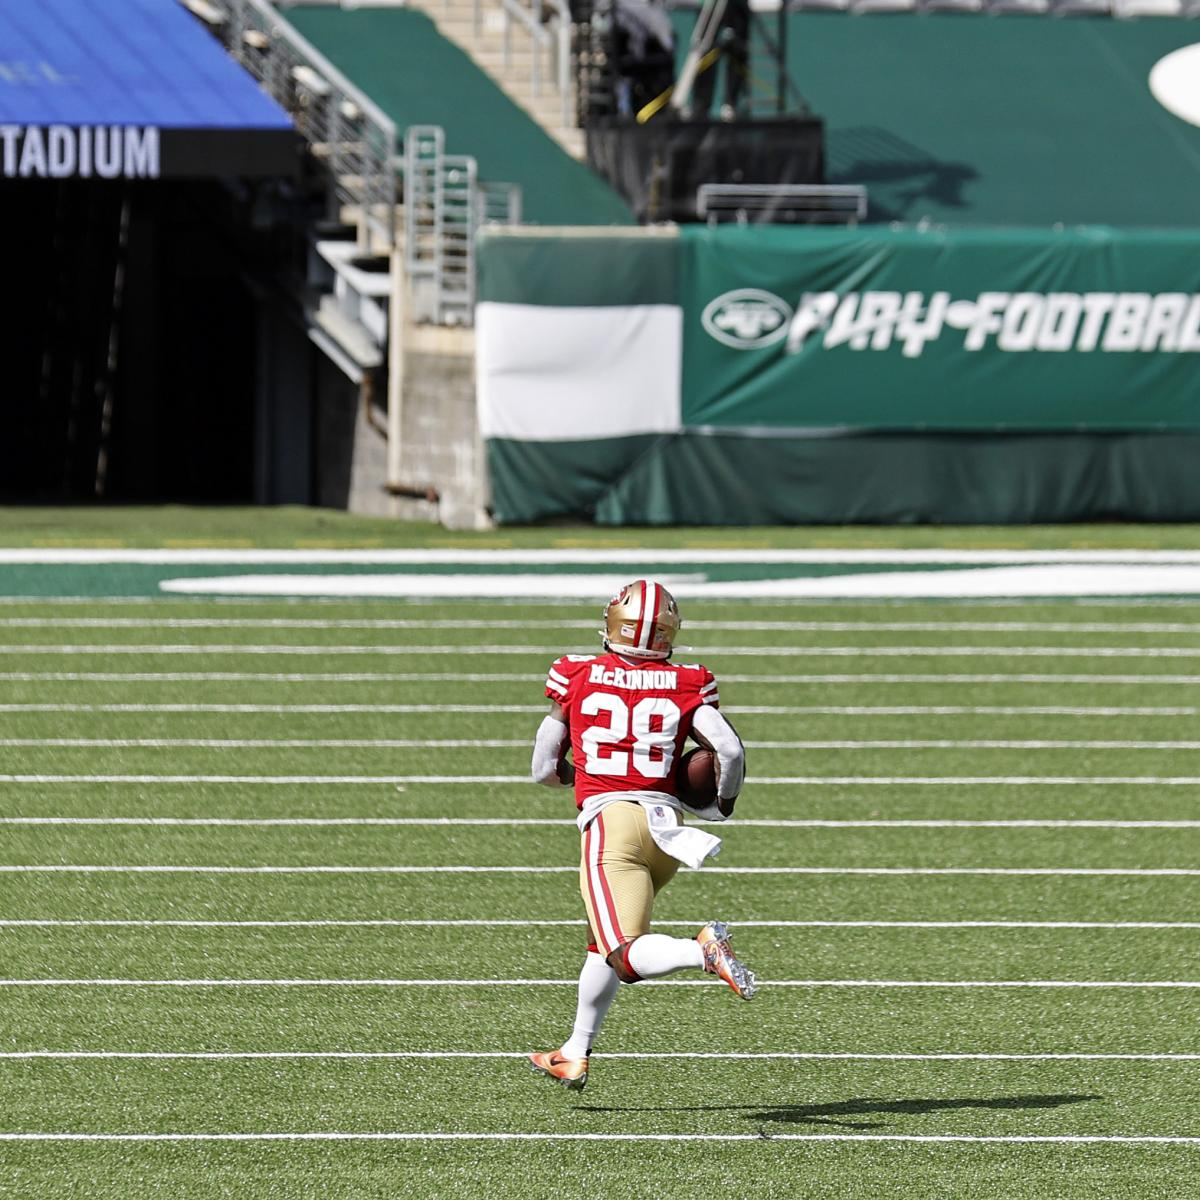 49ers' Jerick McKinnon: 'You Could Feel How Bad the Turf' Was at MetLife Stadium